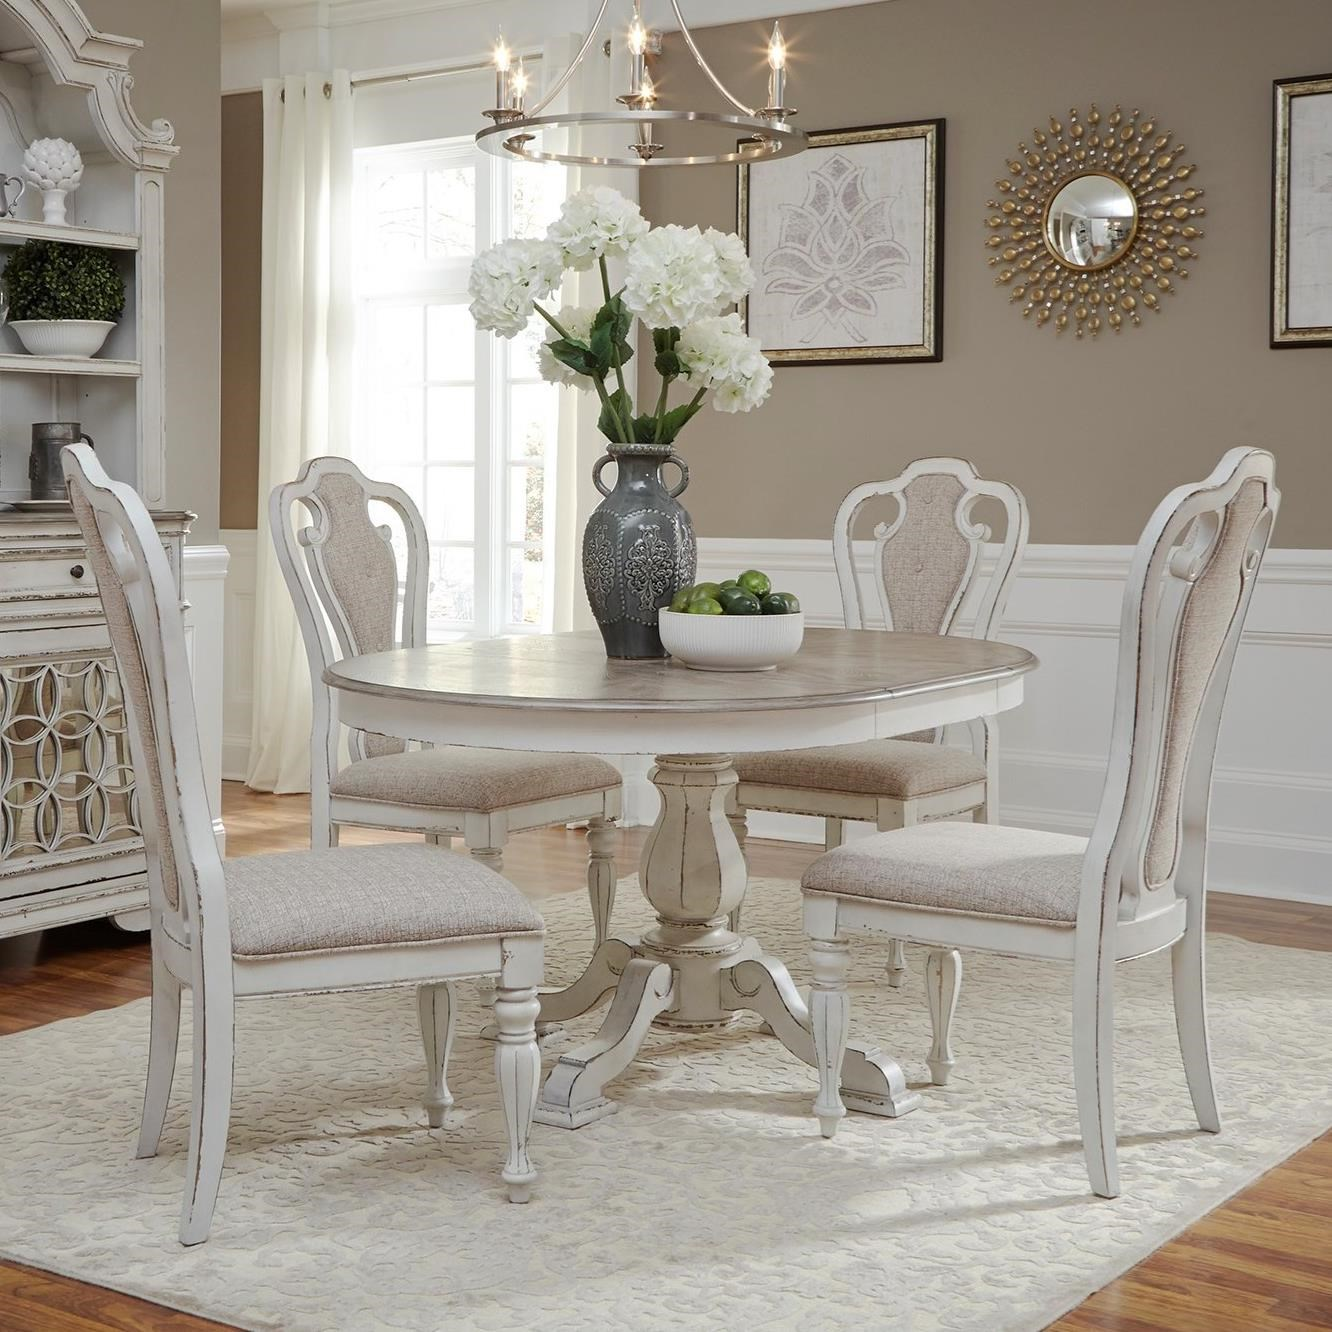 Magnolia Manor Dining 5 Piece Chair & Table Set by Liberty Furniture at Northeast Factory Direct